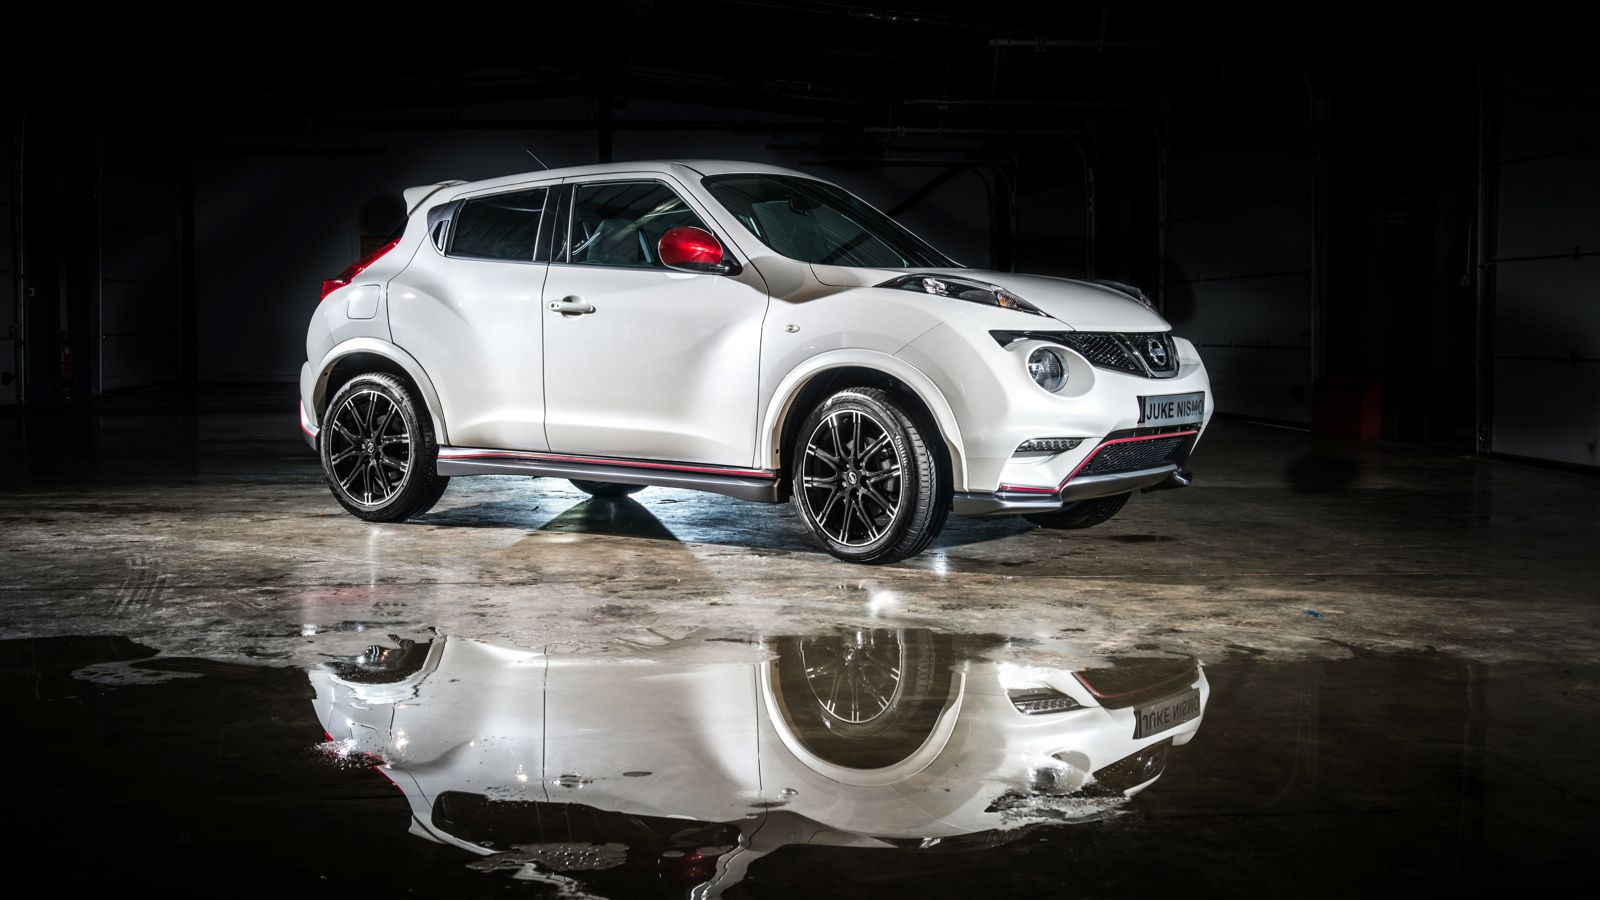 The Nissan Juke Rs Nismo Will Be The Fastest Juke You Can Afford Nissan Juke Nissan Juke Nismo Nissan Nismo